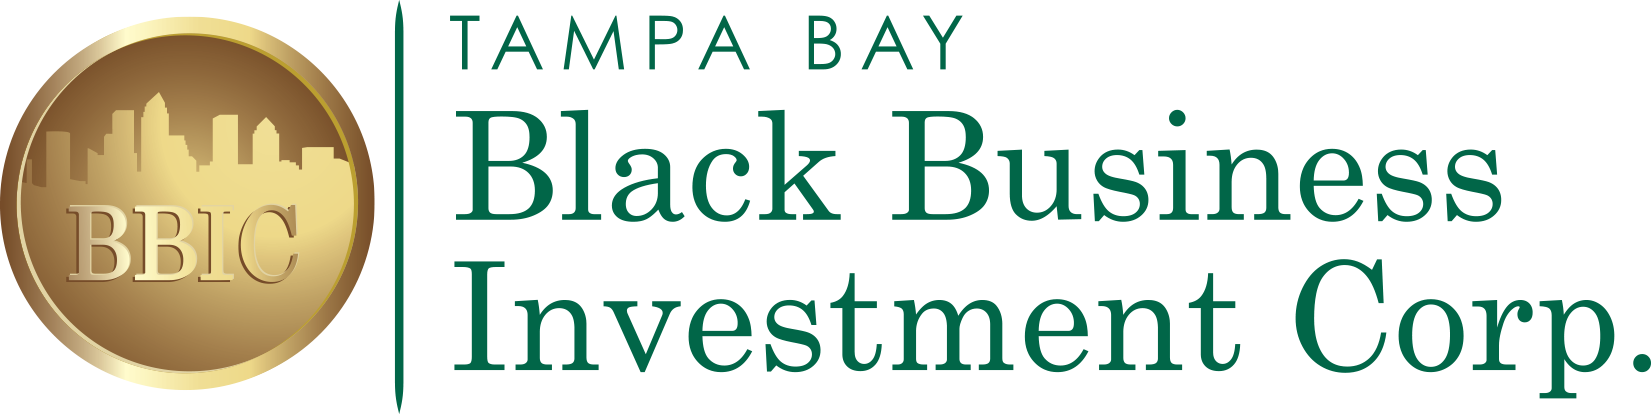 S03 Tampa Bay Black Business Investment Corp.